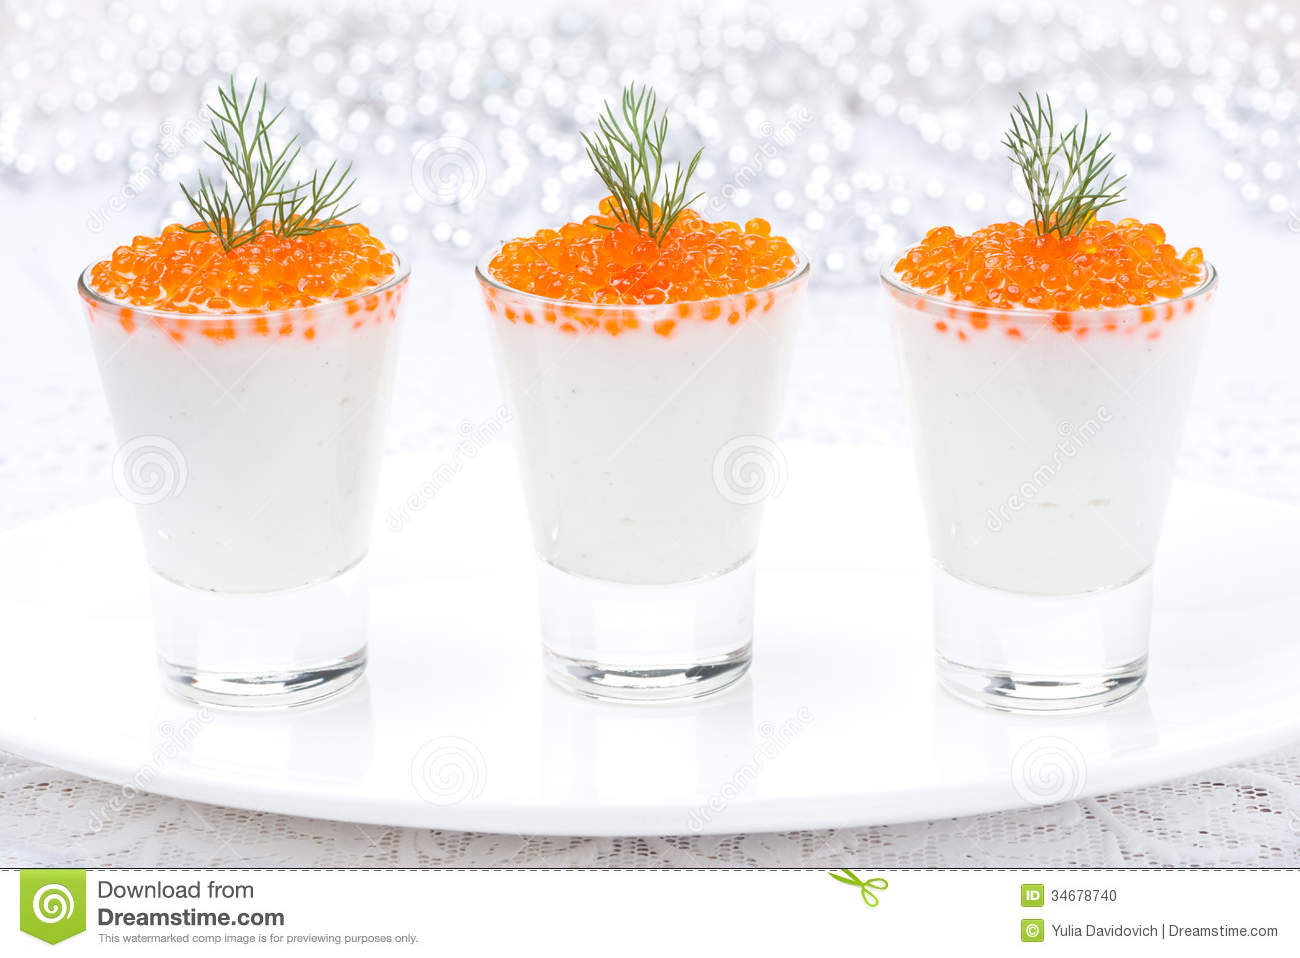 ... Cheese And Red Caviar For Christmas Stock Photo - Image: 34678740